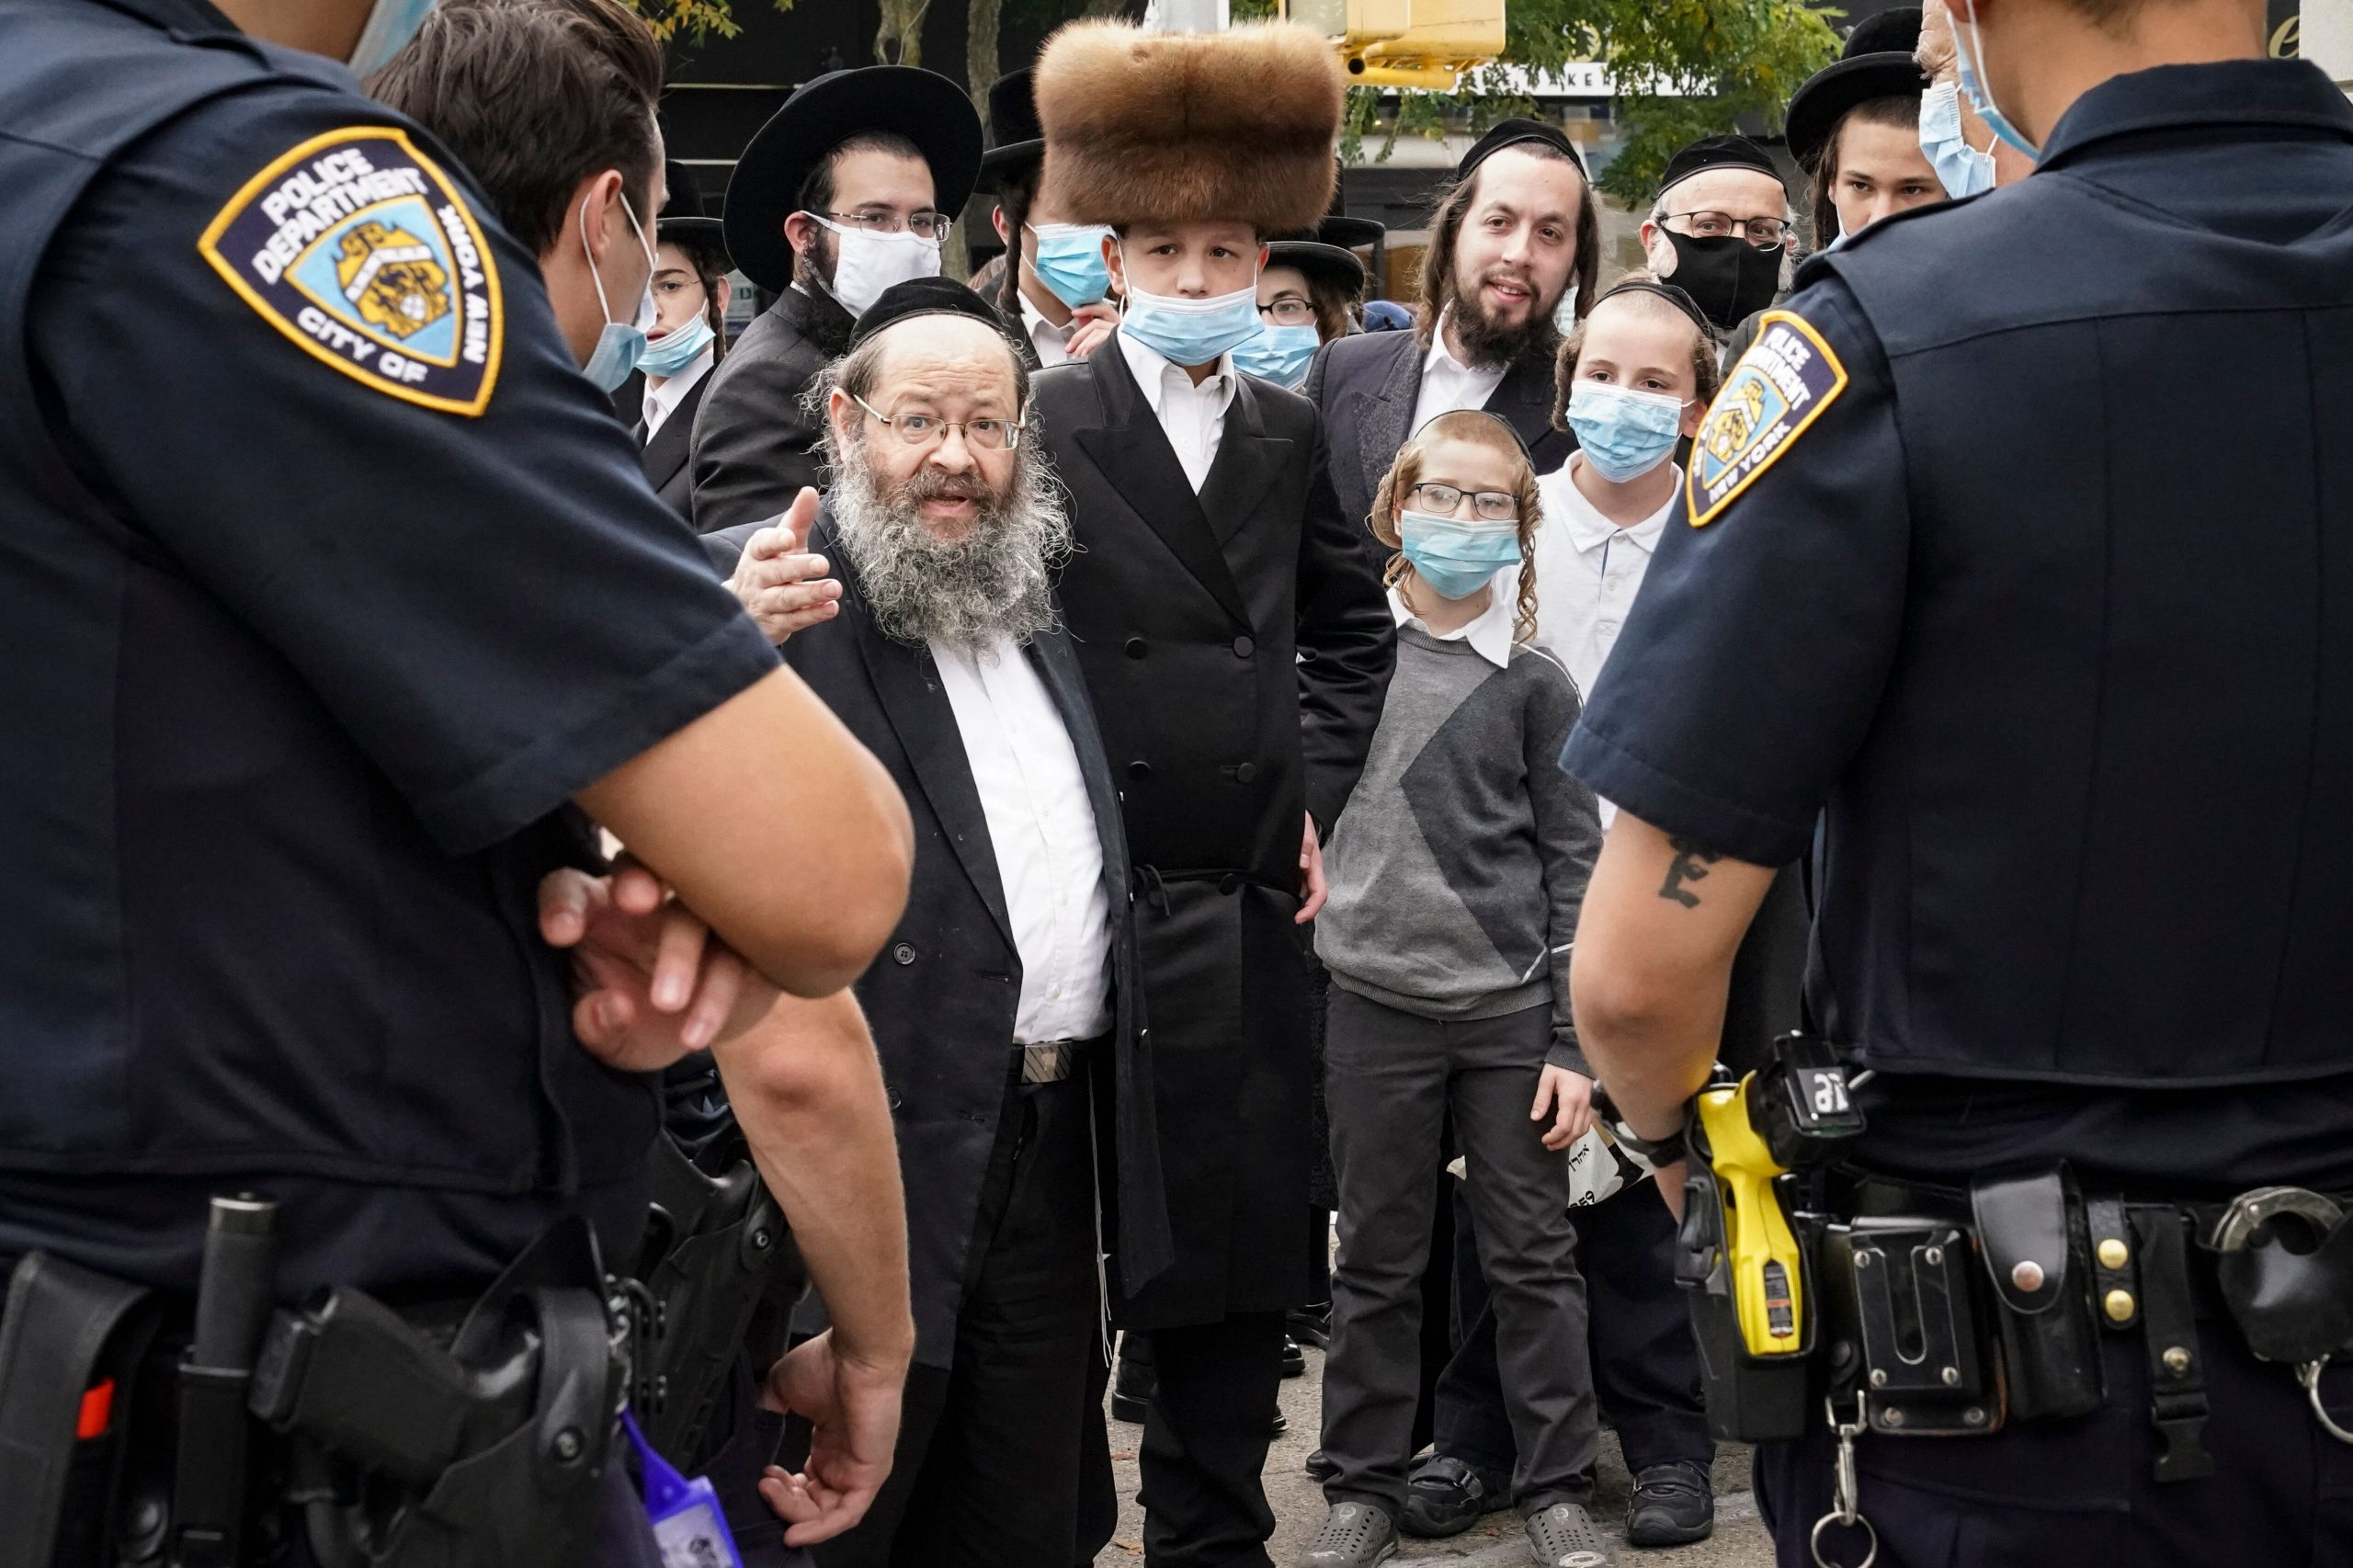 Members of the Orthodox Jewish community speak with NYPD officers on a street corner in the Borough Park neighborhood of Broo